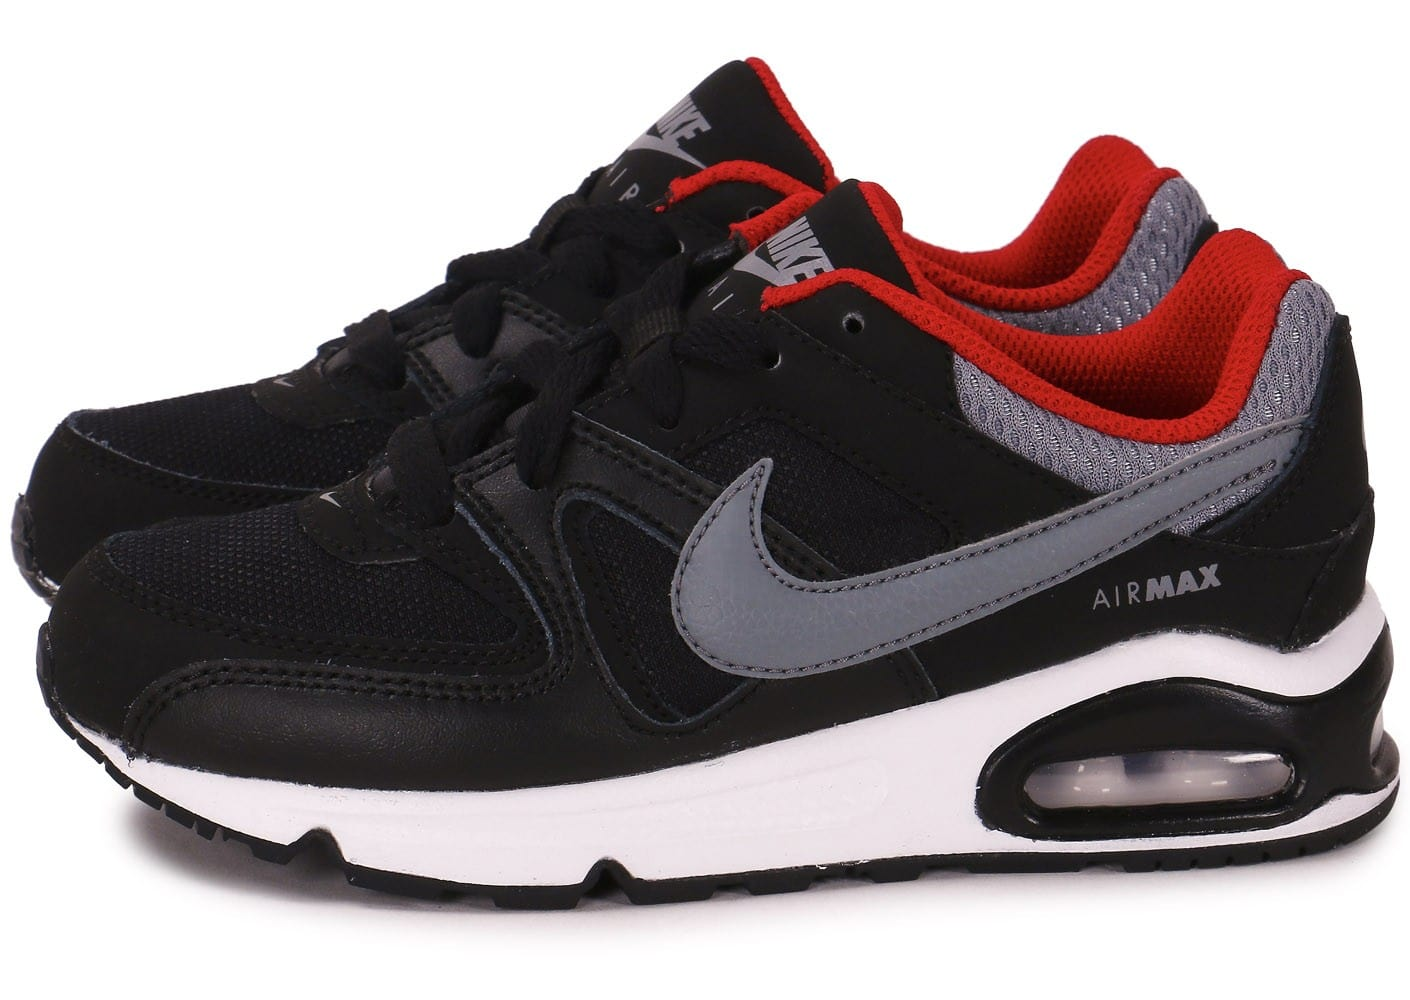 Nike Air Max Grise Et Rouge